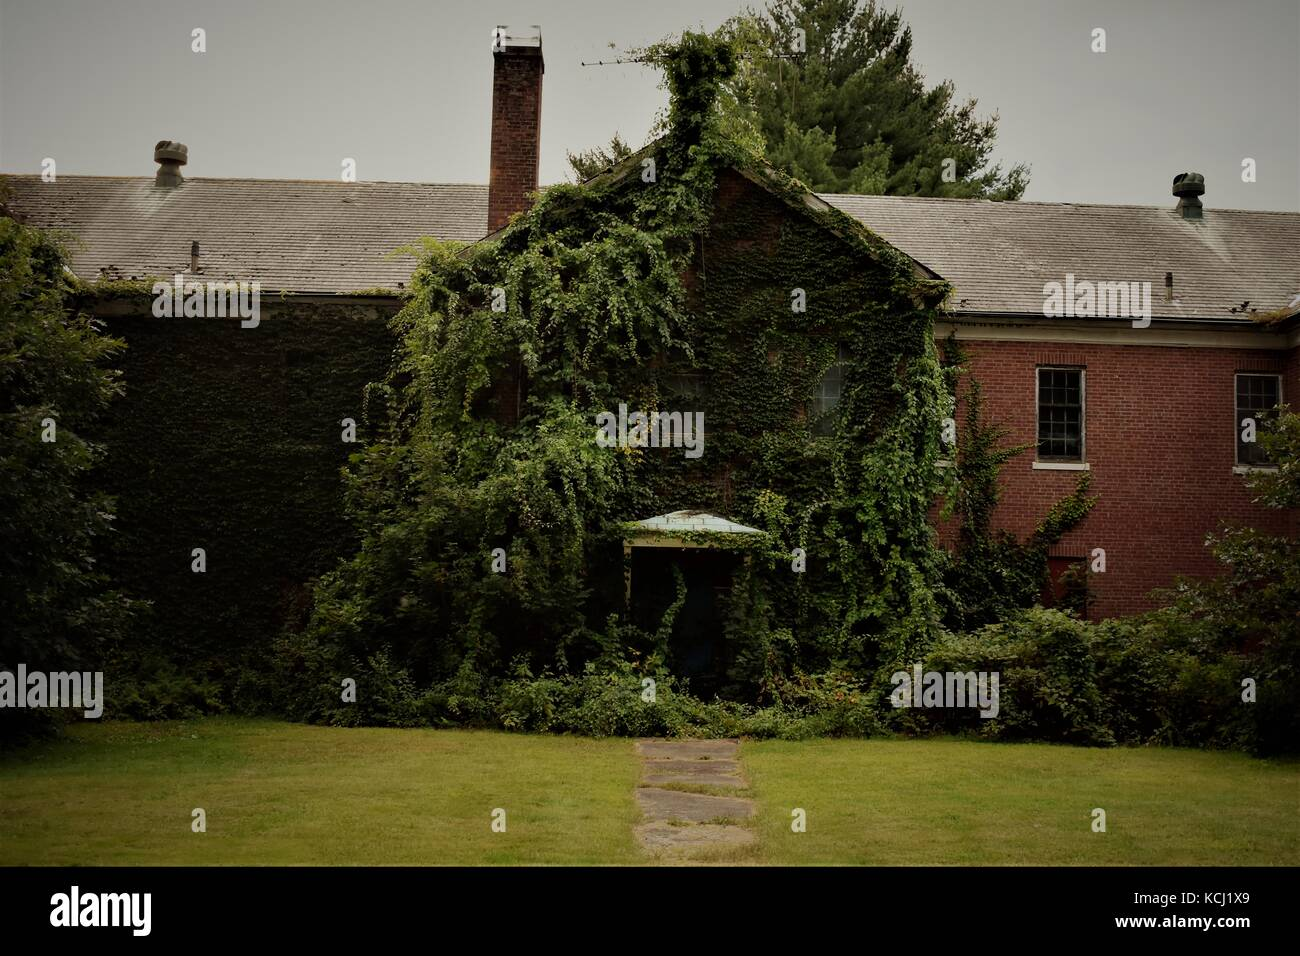 Overgrown abandoned building - Stock Image